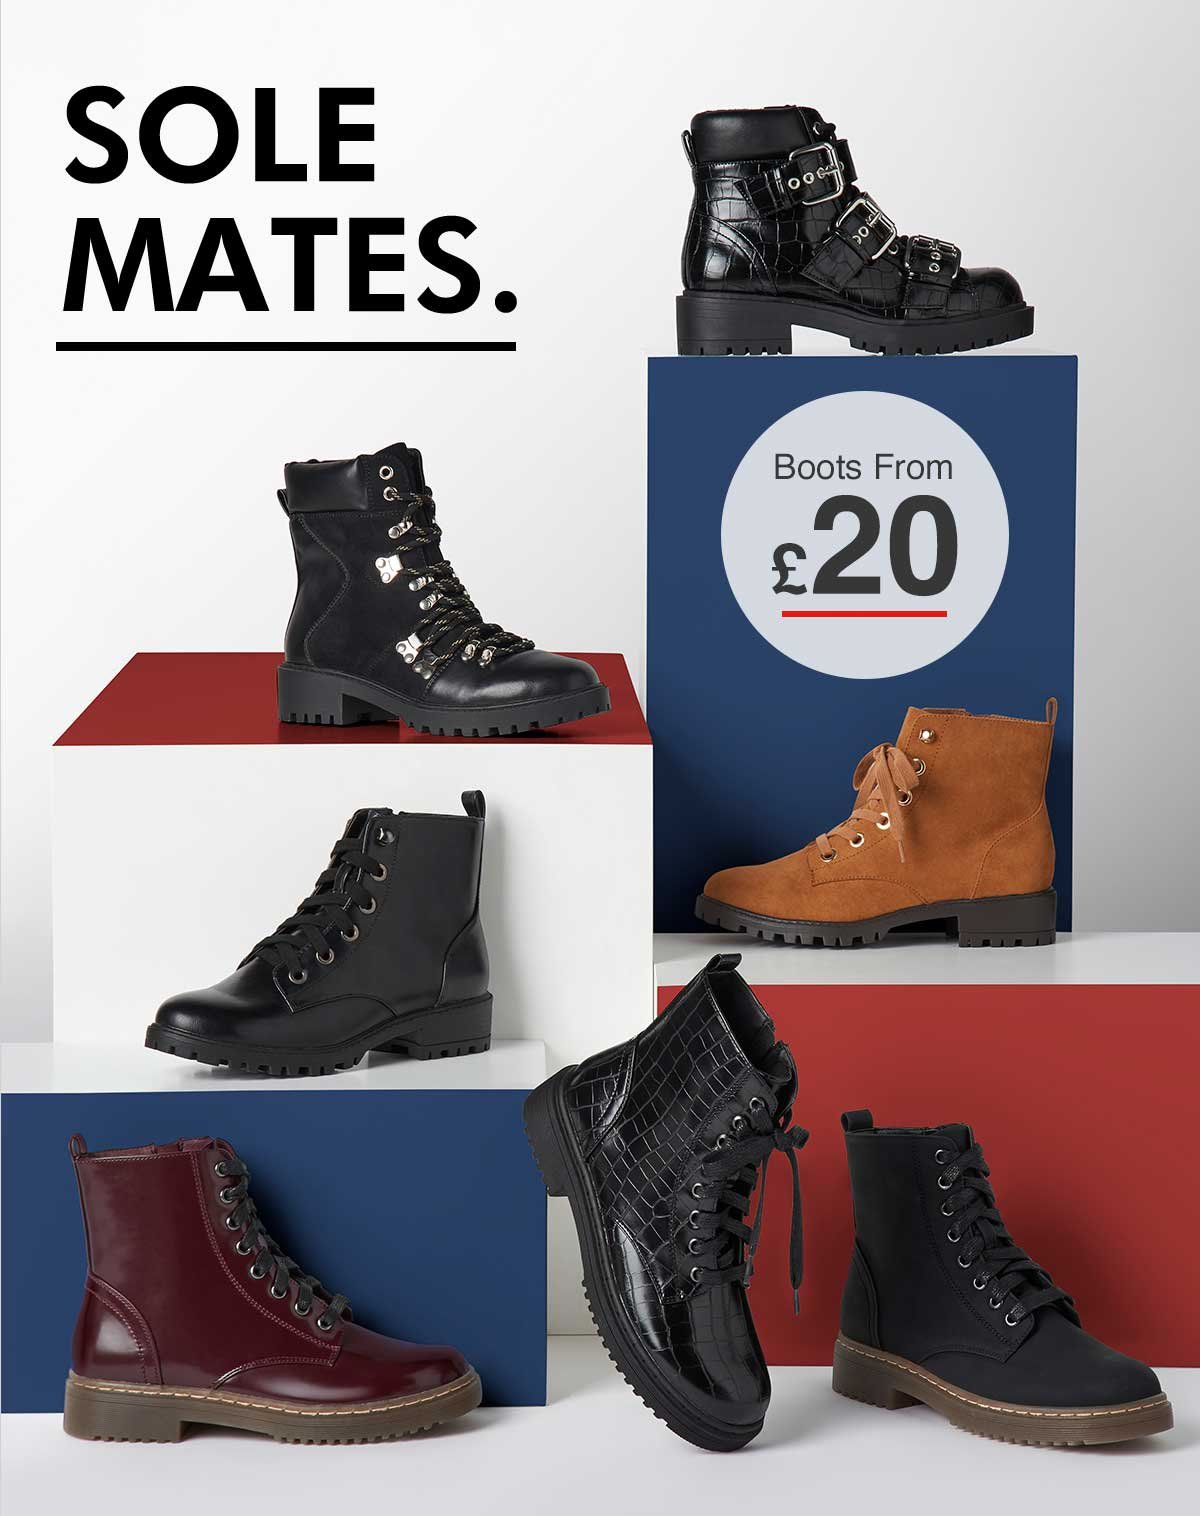 Matalan Direct: Hey, time for a reBOOT